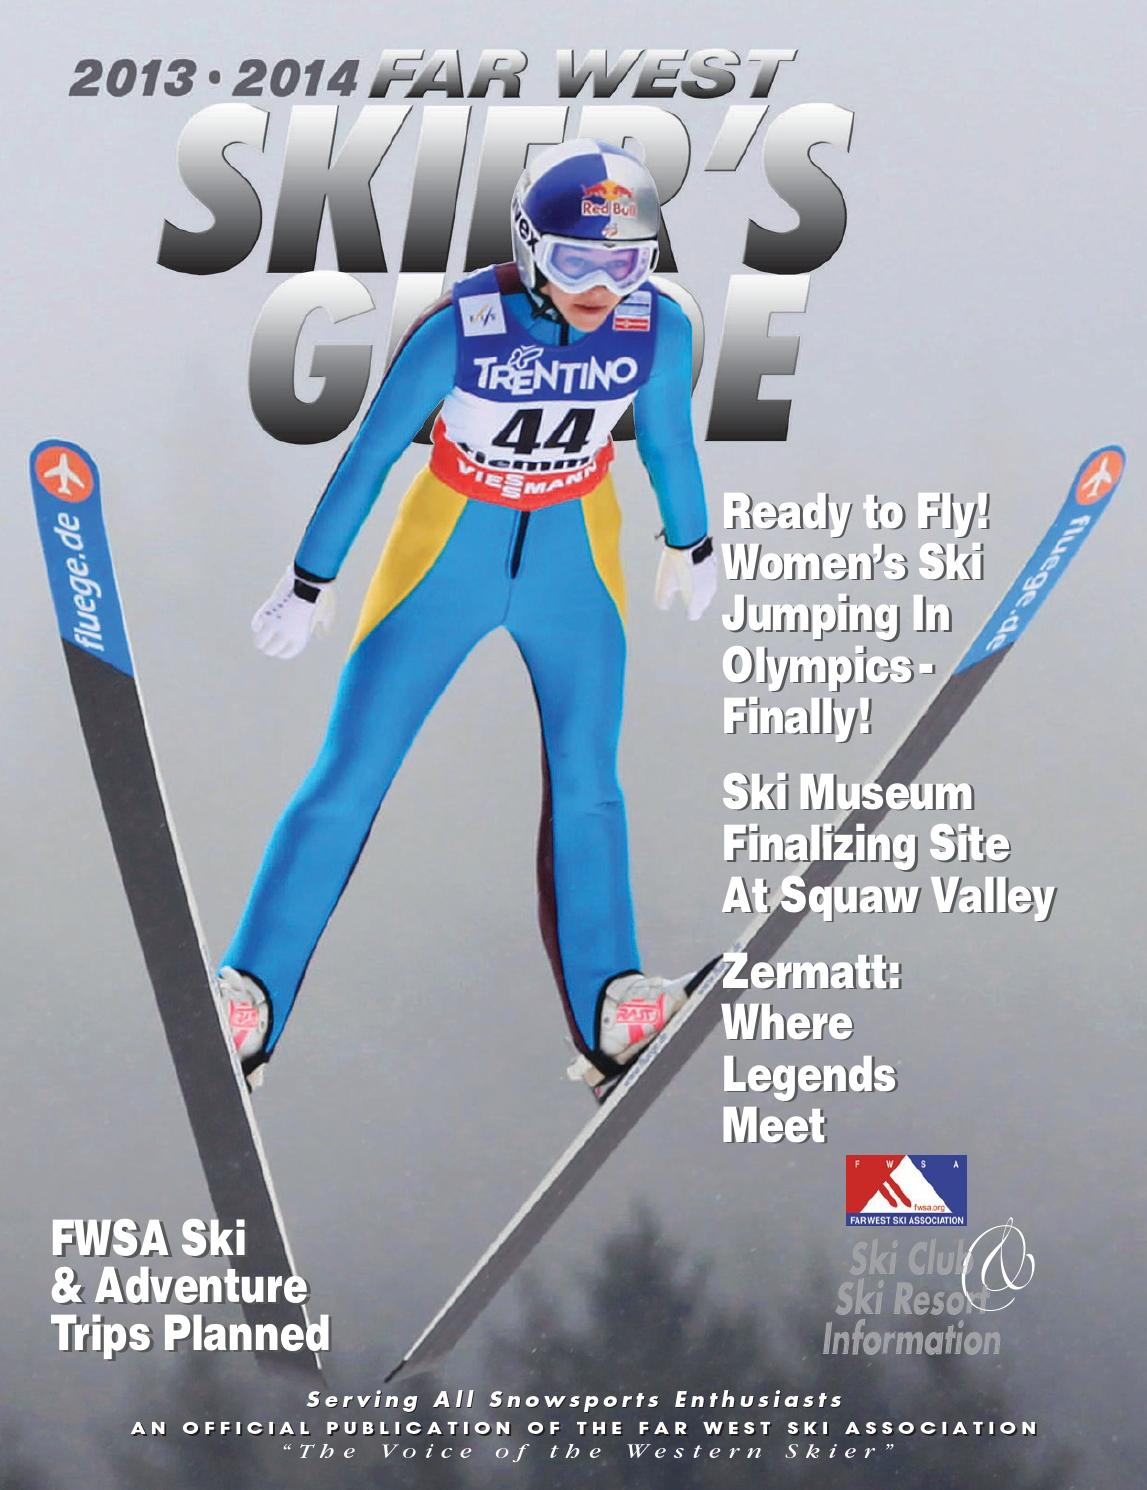 fb2f1f1513a Farwestskiersguide 2013 14 by Premier Travel Media - issuu